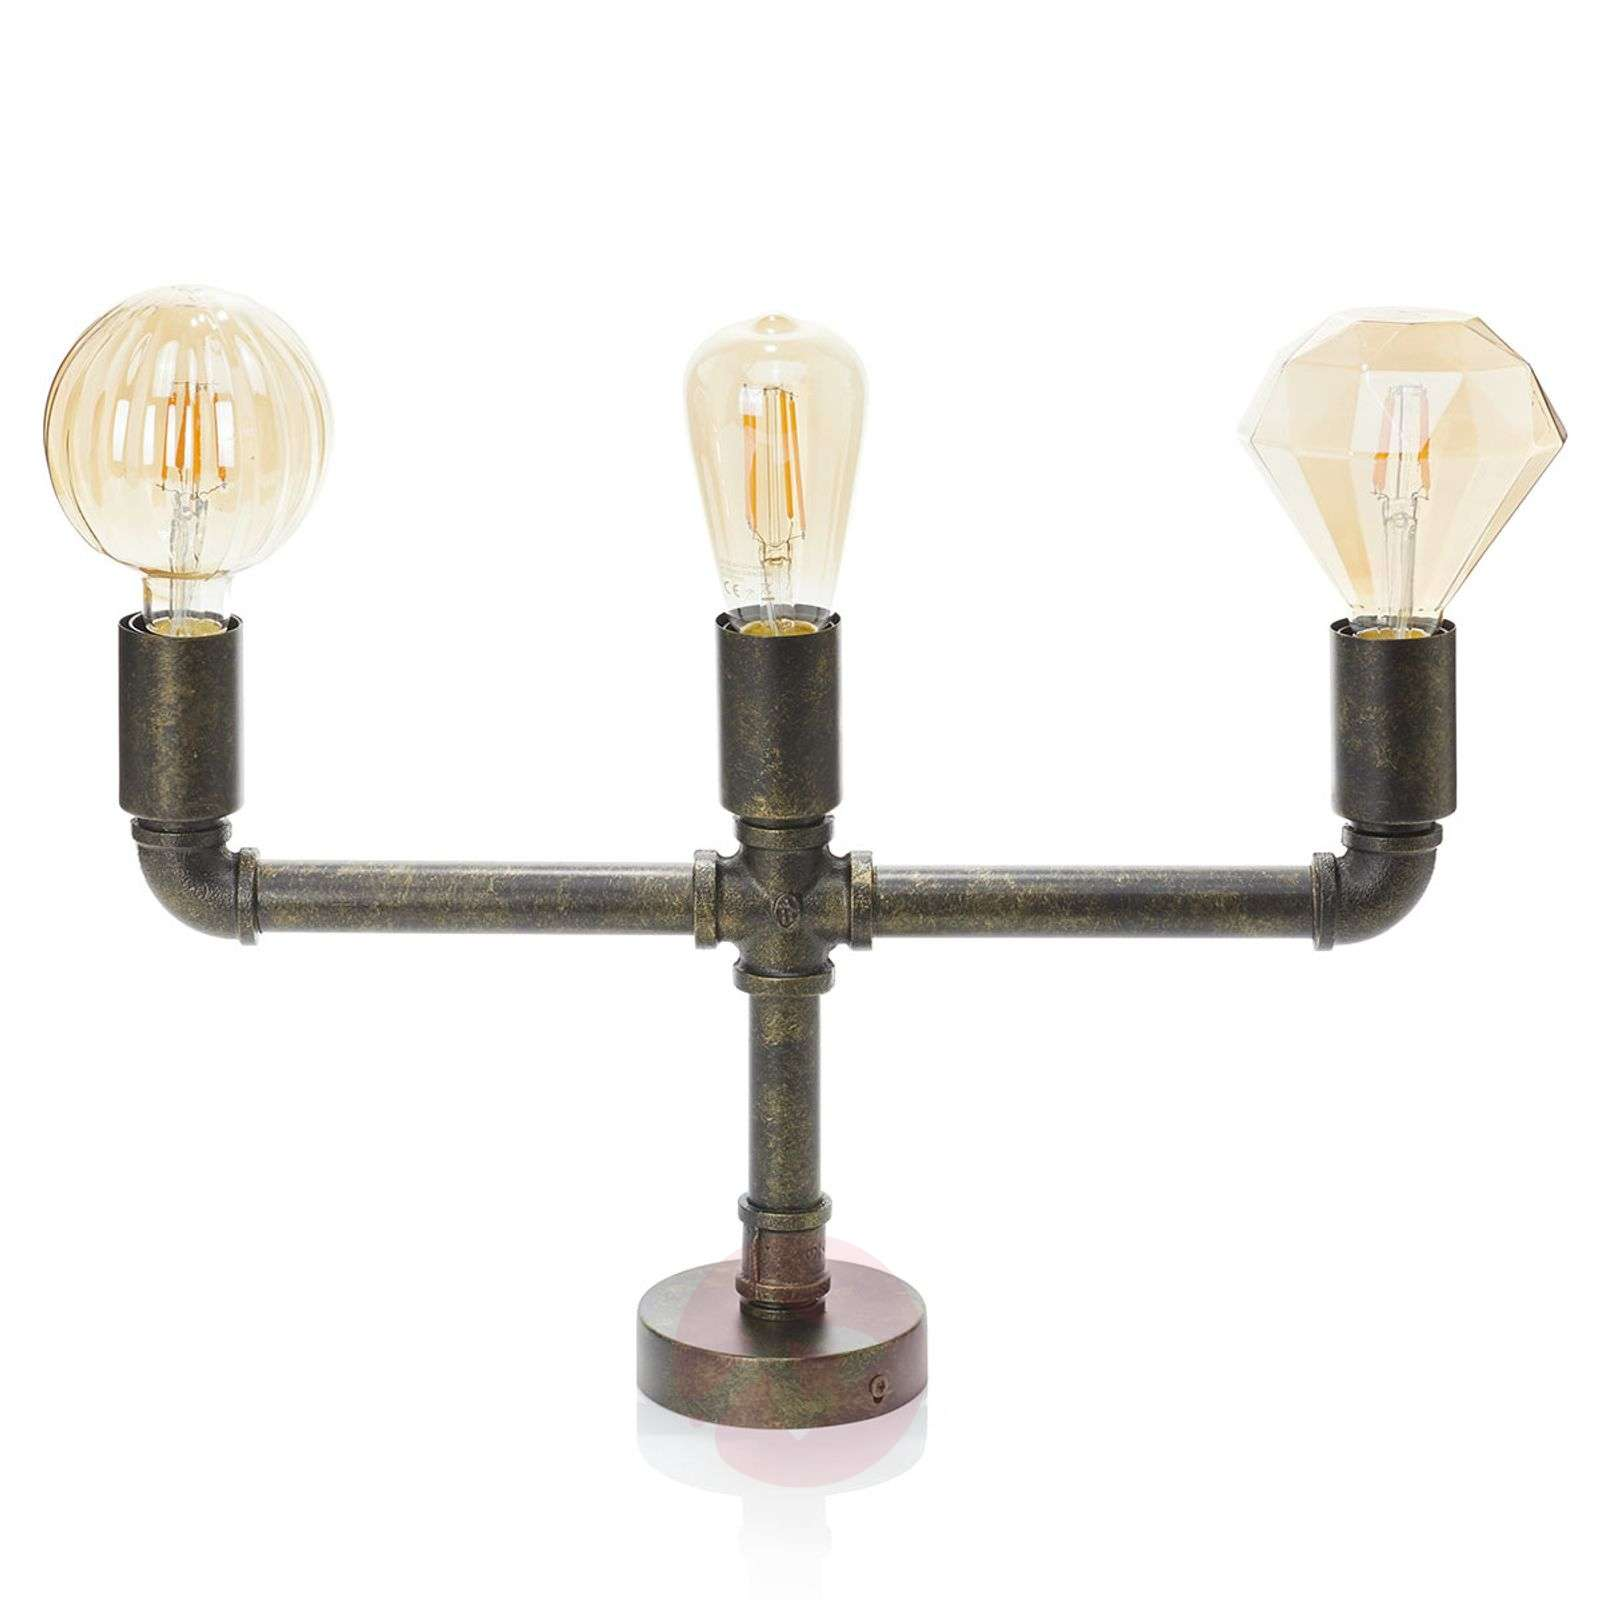 Leonas plafonnier LED, style industriel, 3 lampes-4018153-012